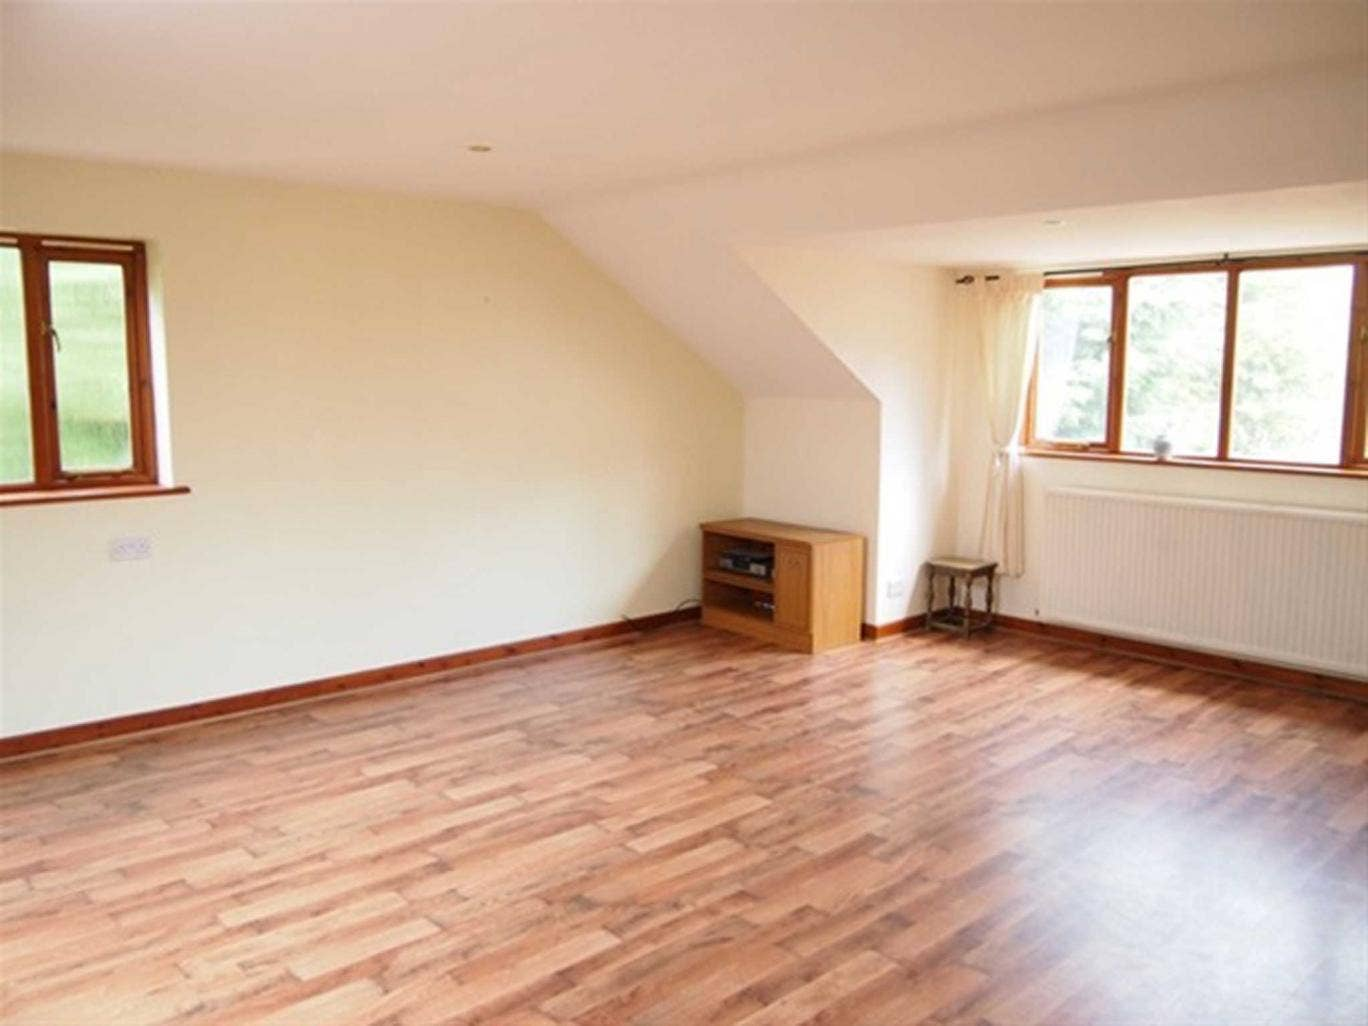 Two bedroom flat to rent in Victoria Street, St.Albans AL1. On with Langleys for £825 pcm (£190 pw).